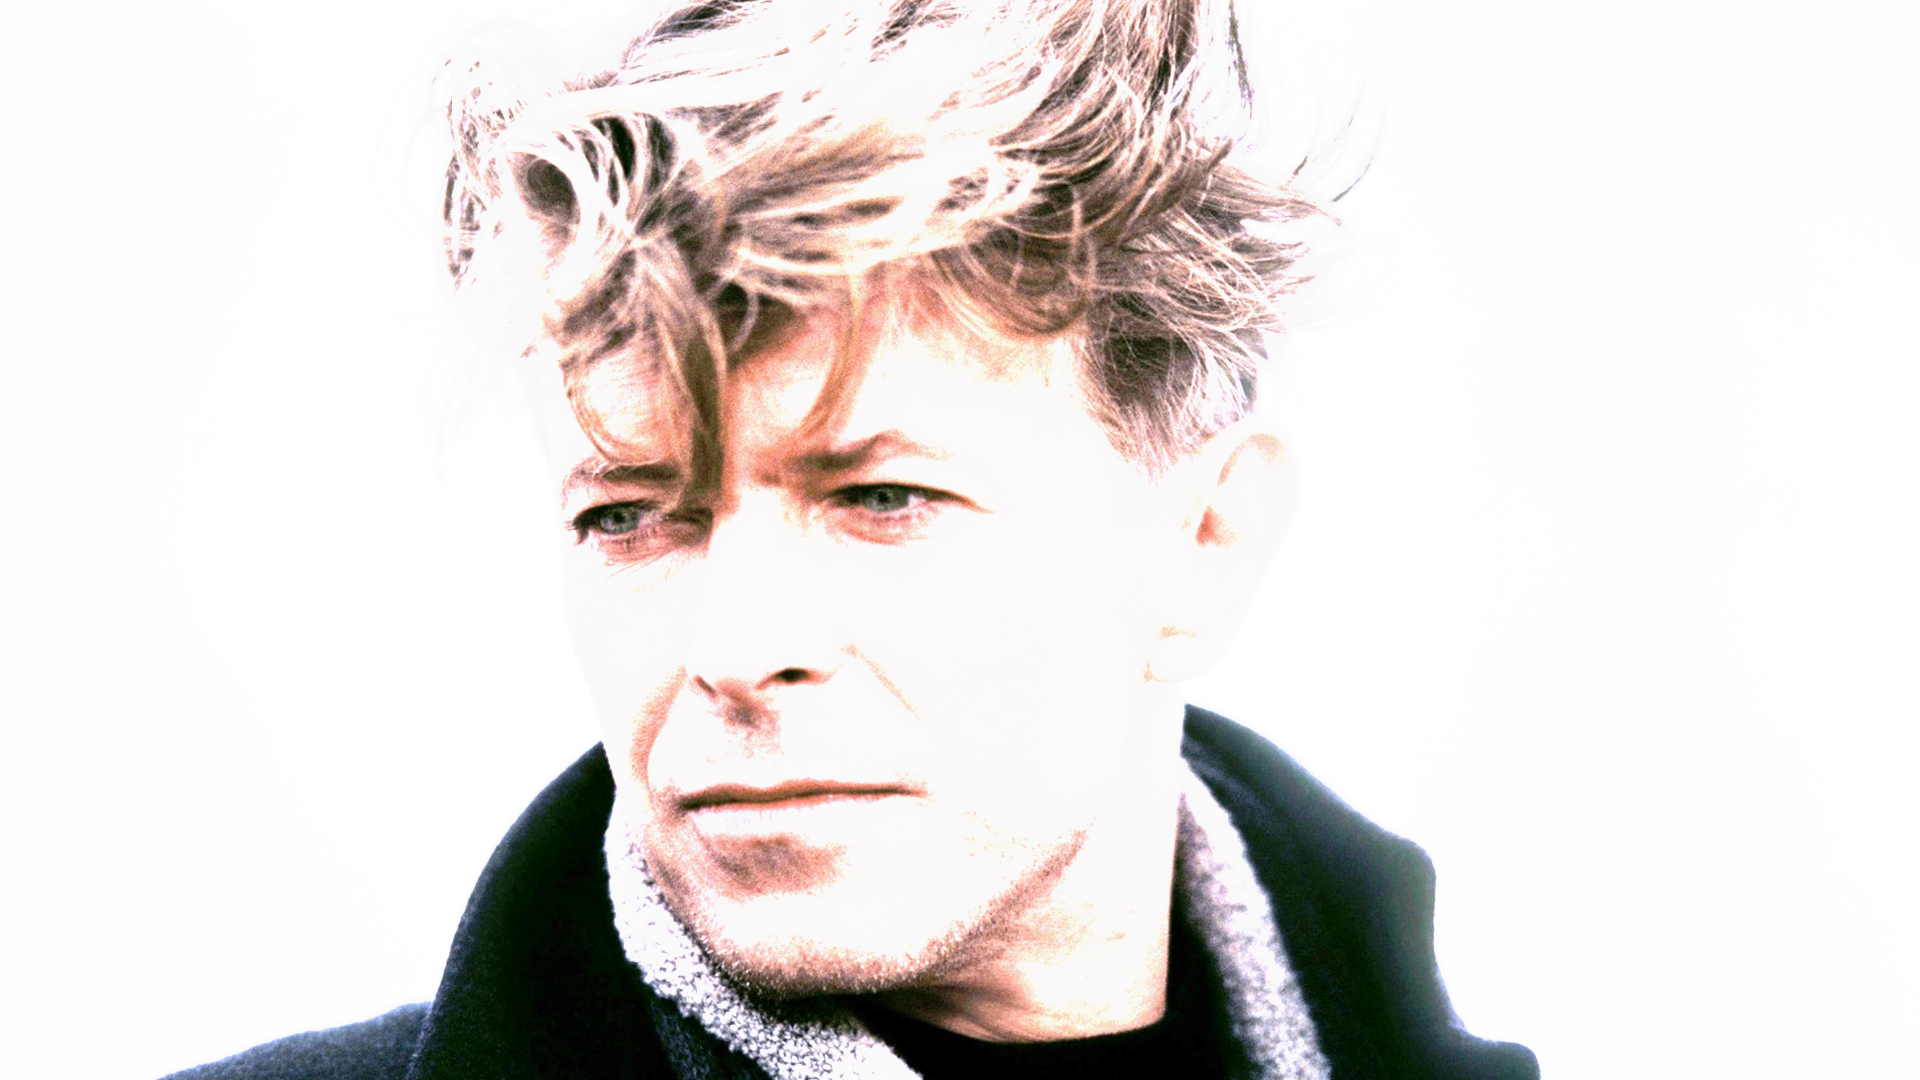 David Bowie Wallpapers, Pictures, Images